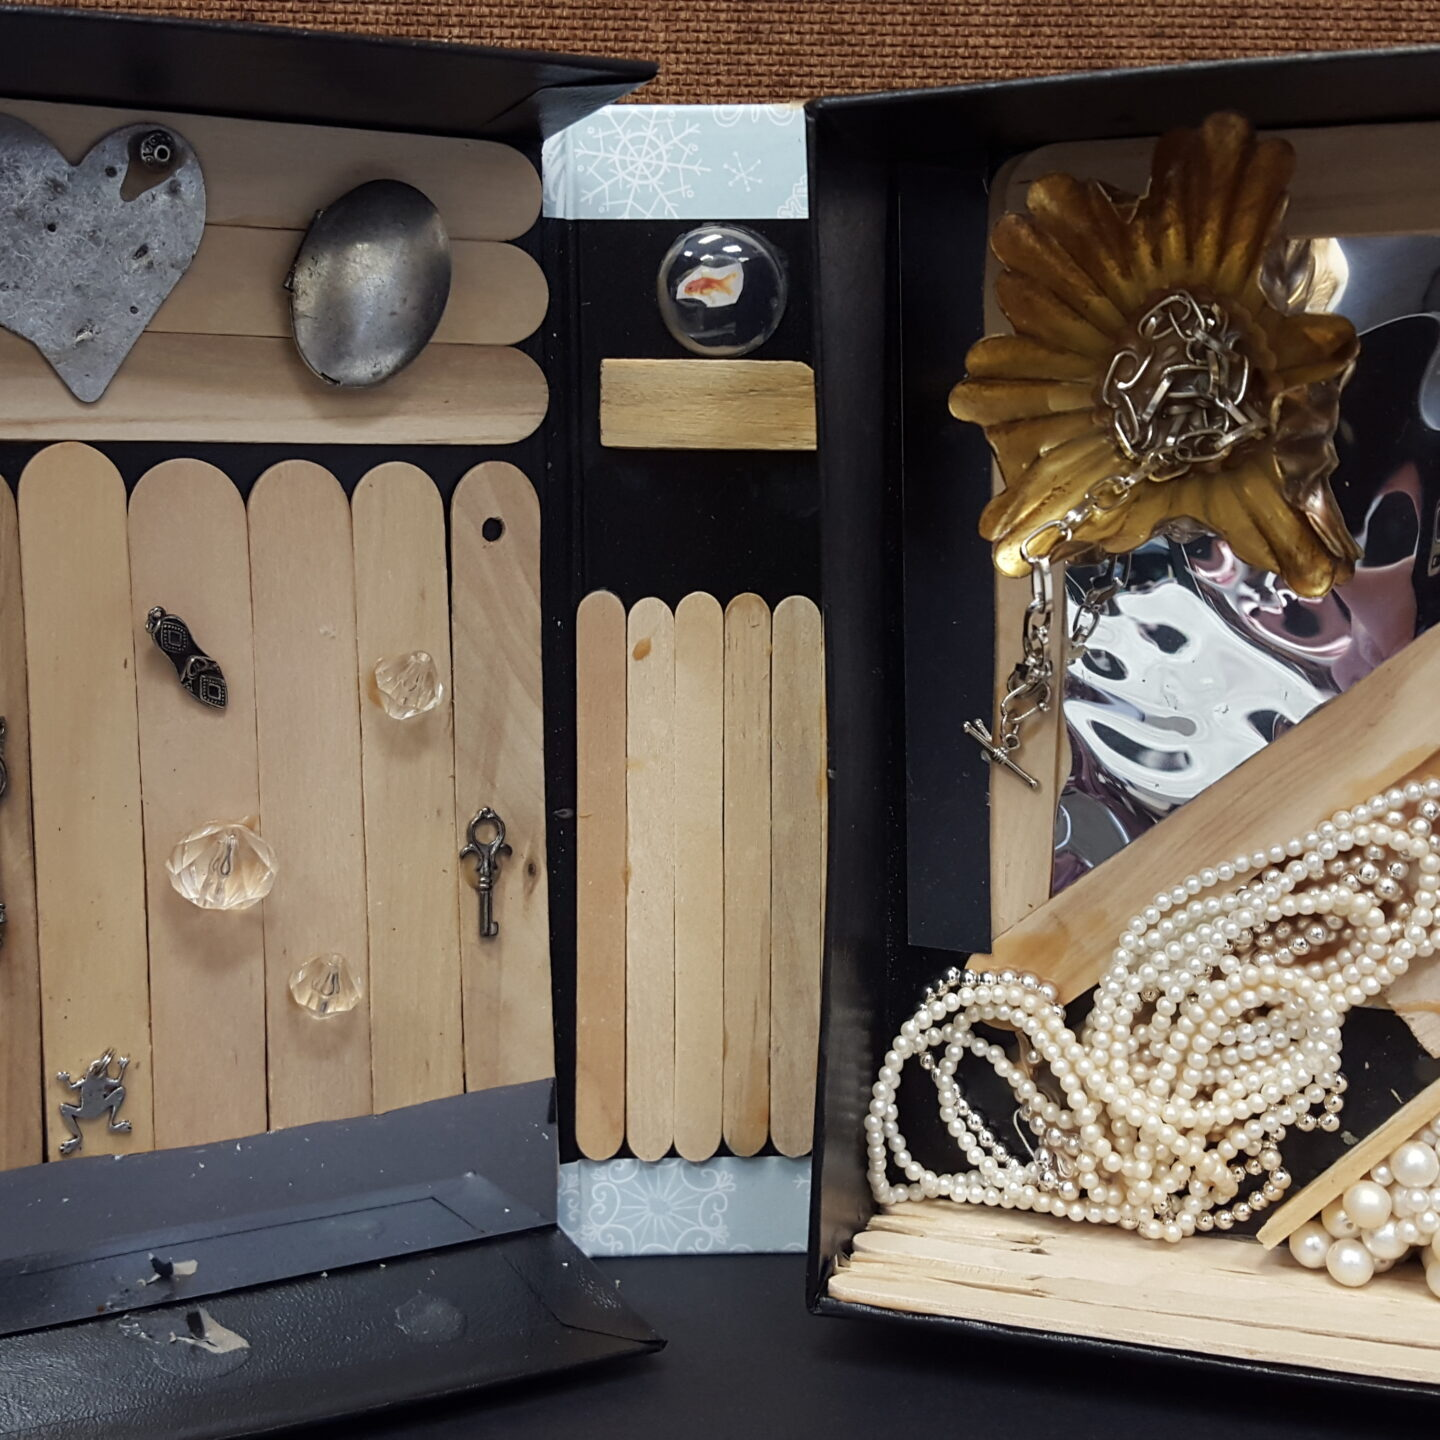 Assemblage by Student